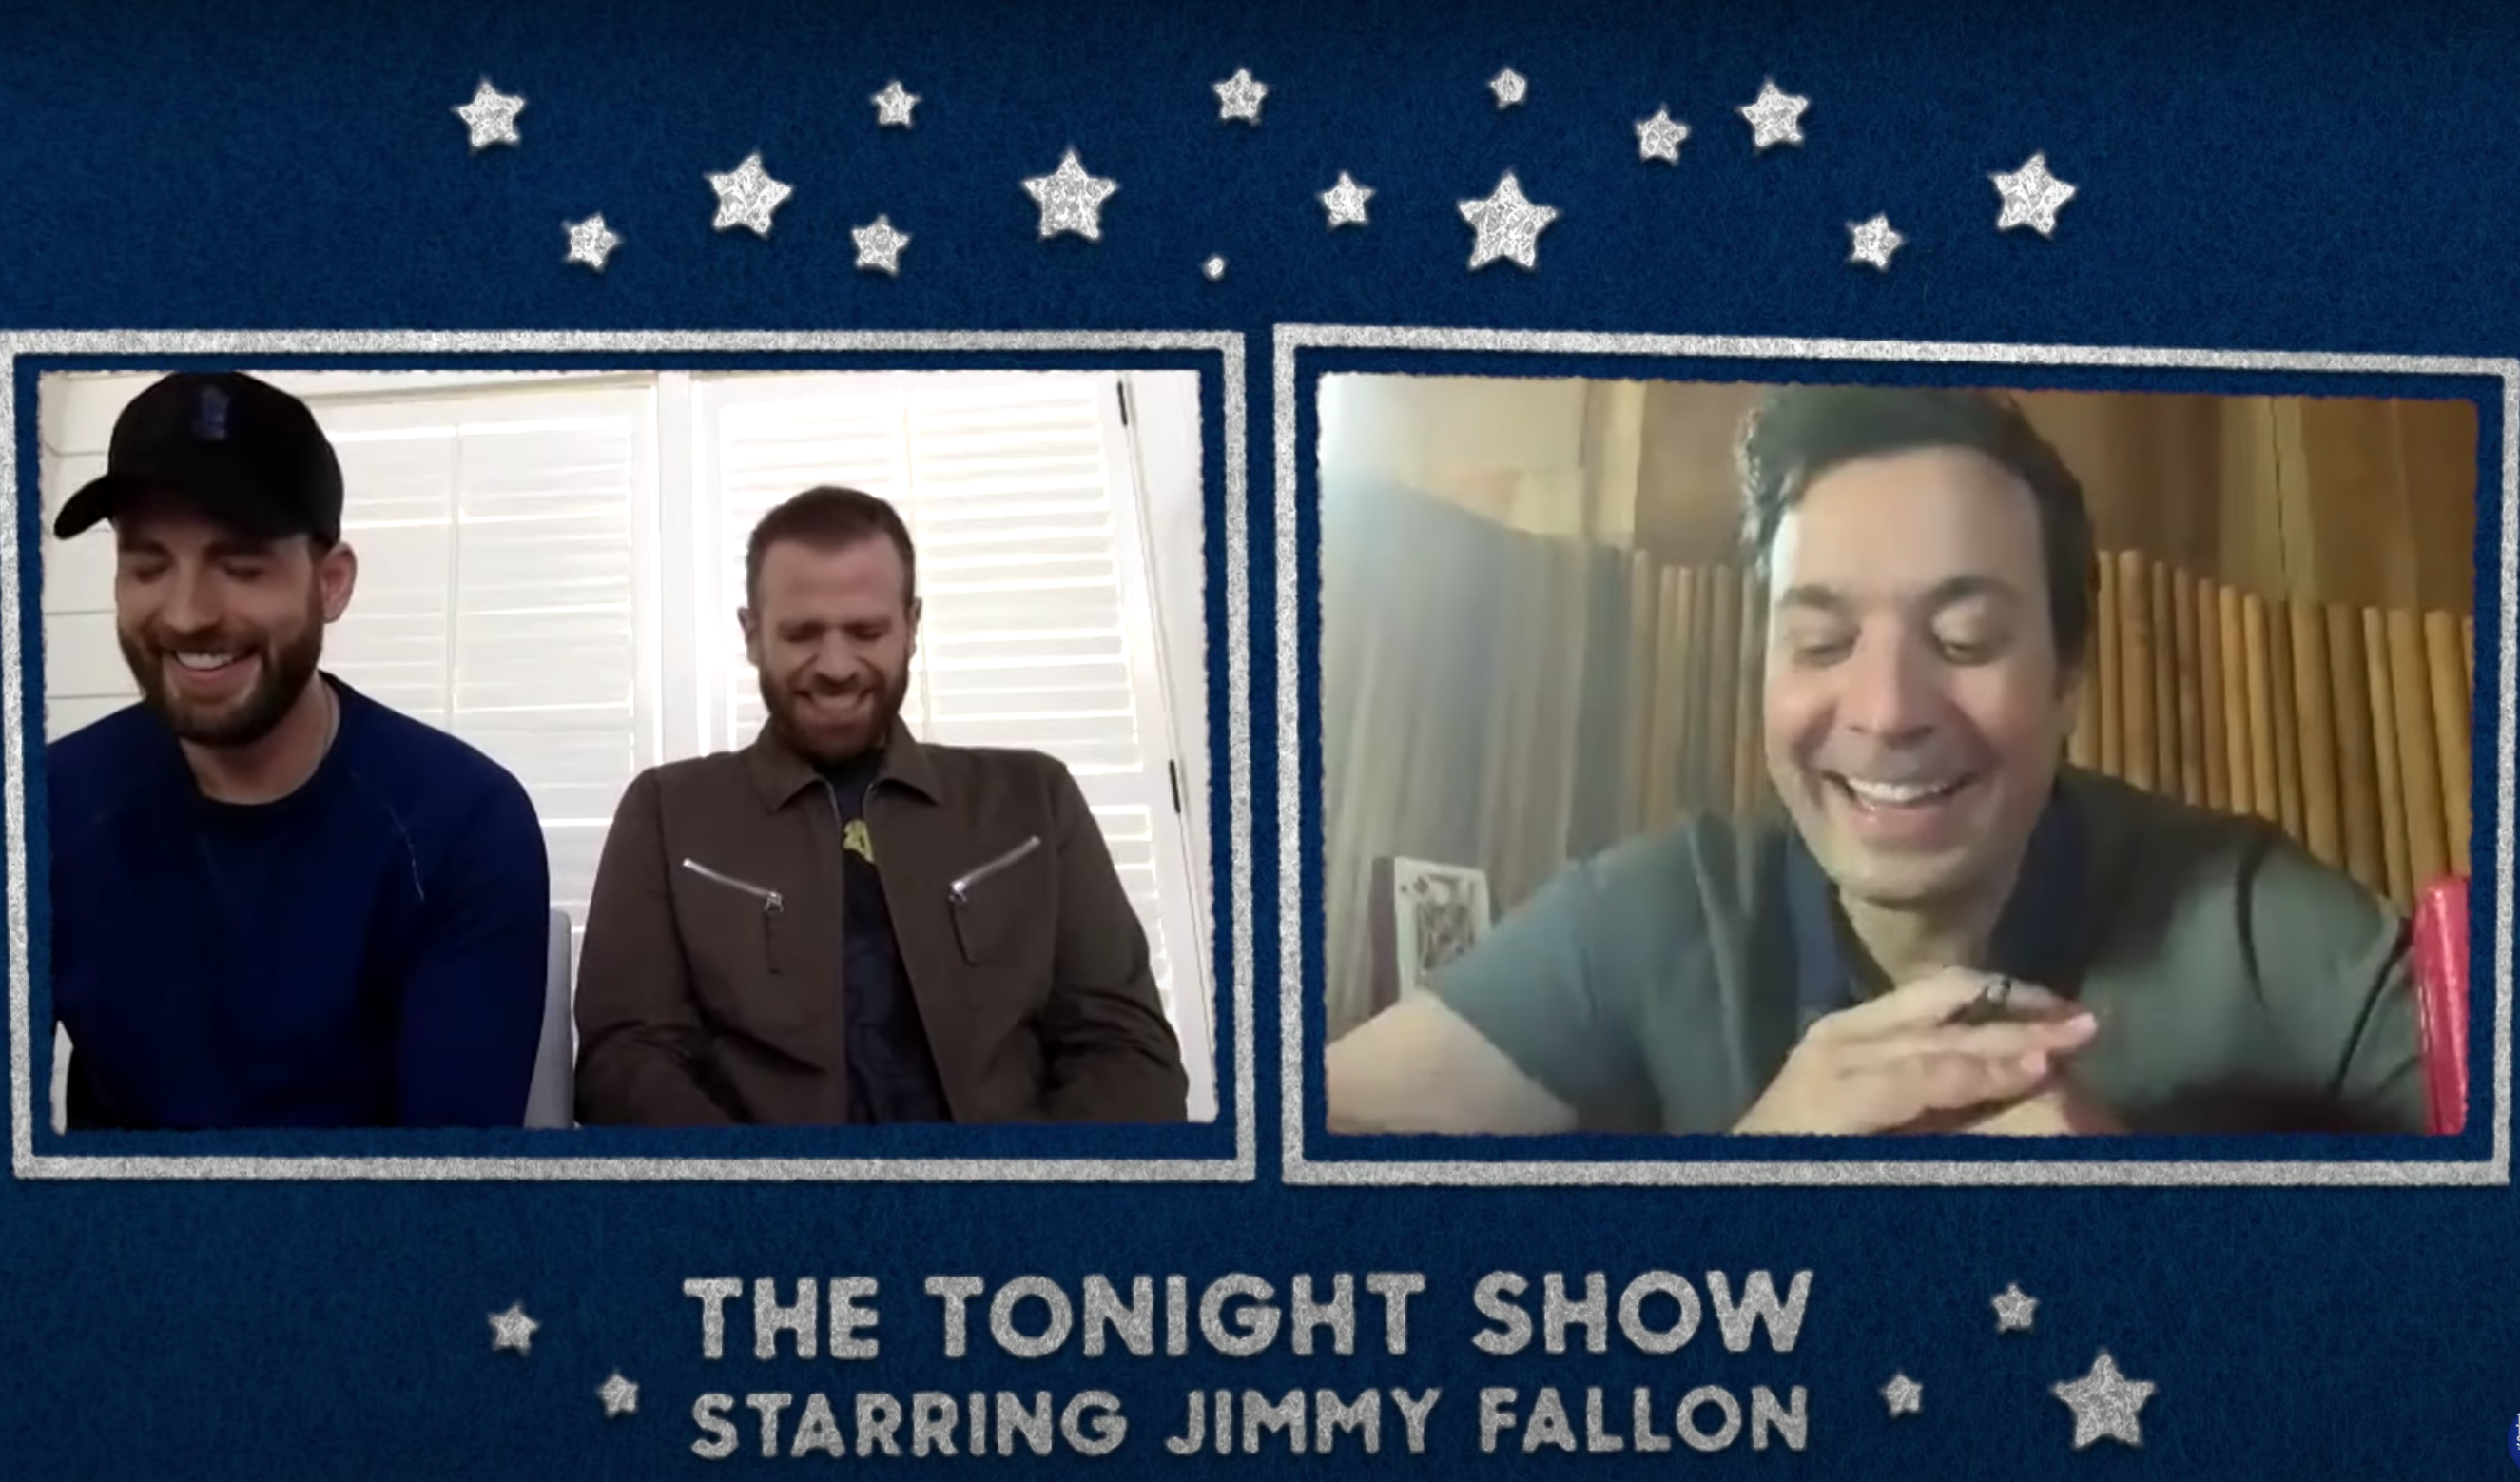 chris evans scott evans jimmy fallon the tonight show